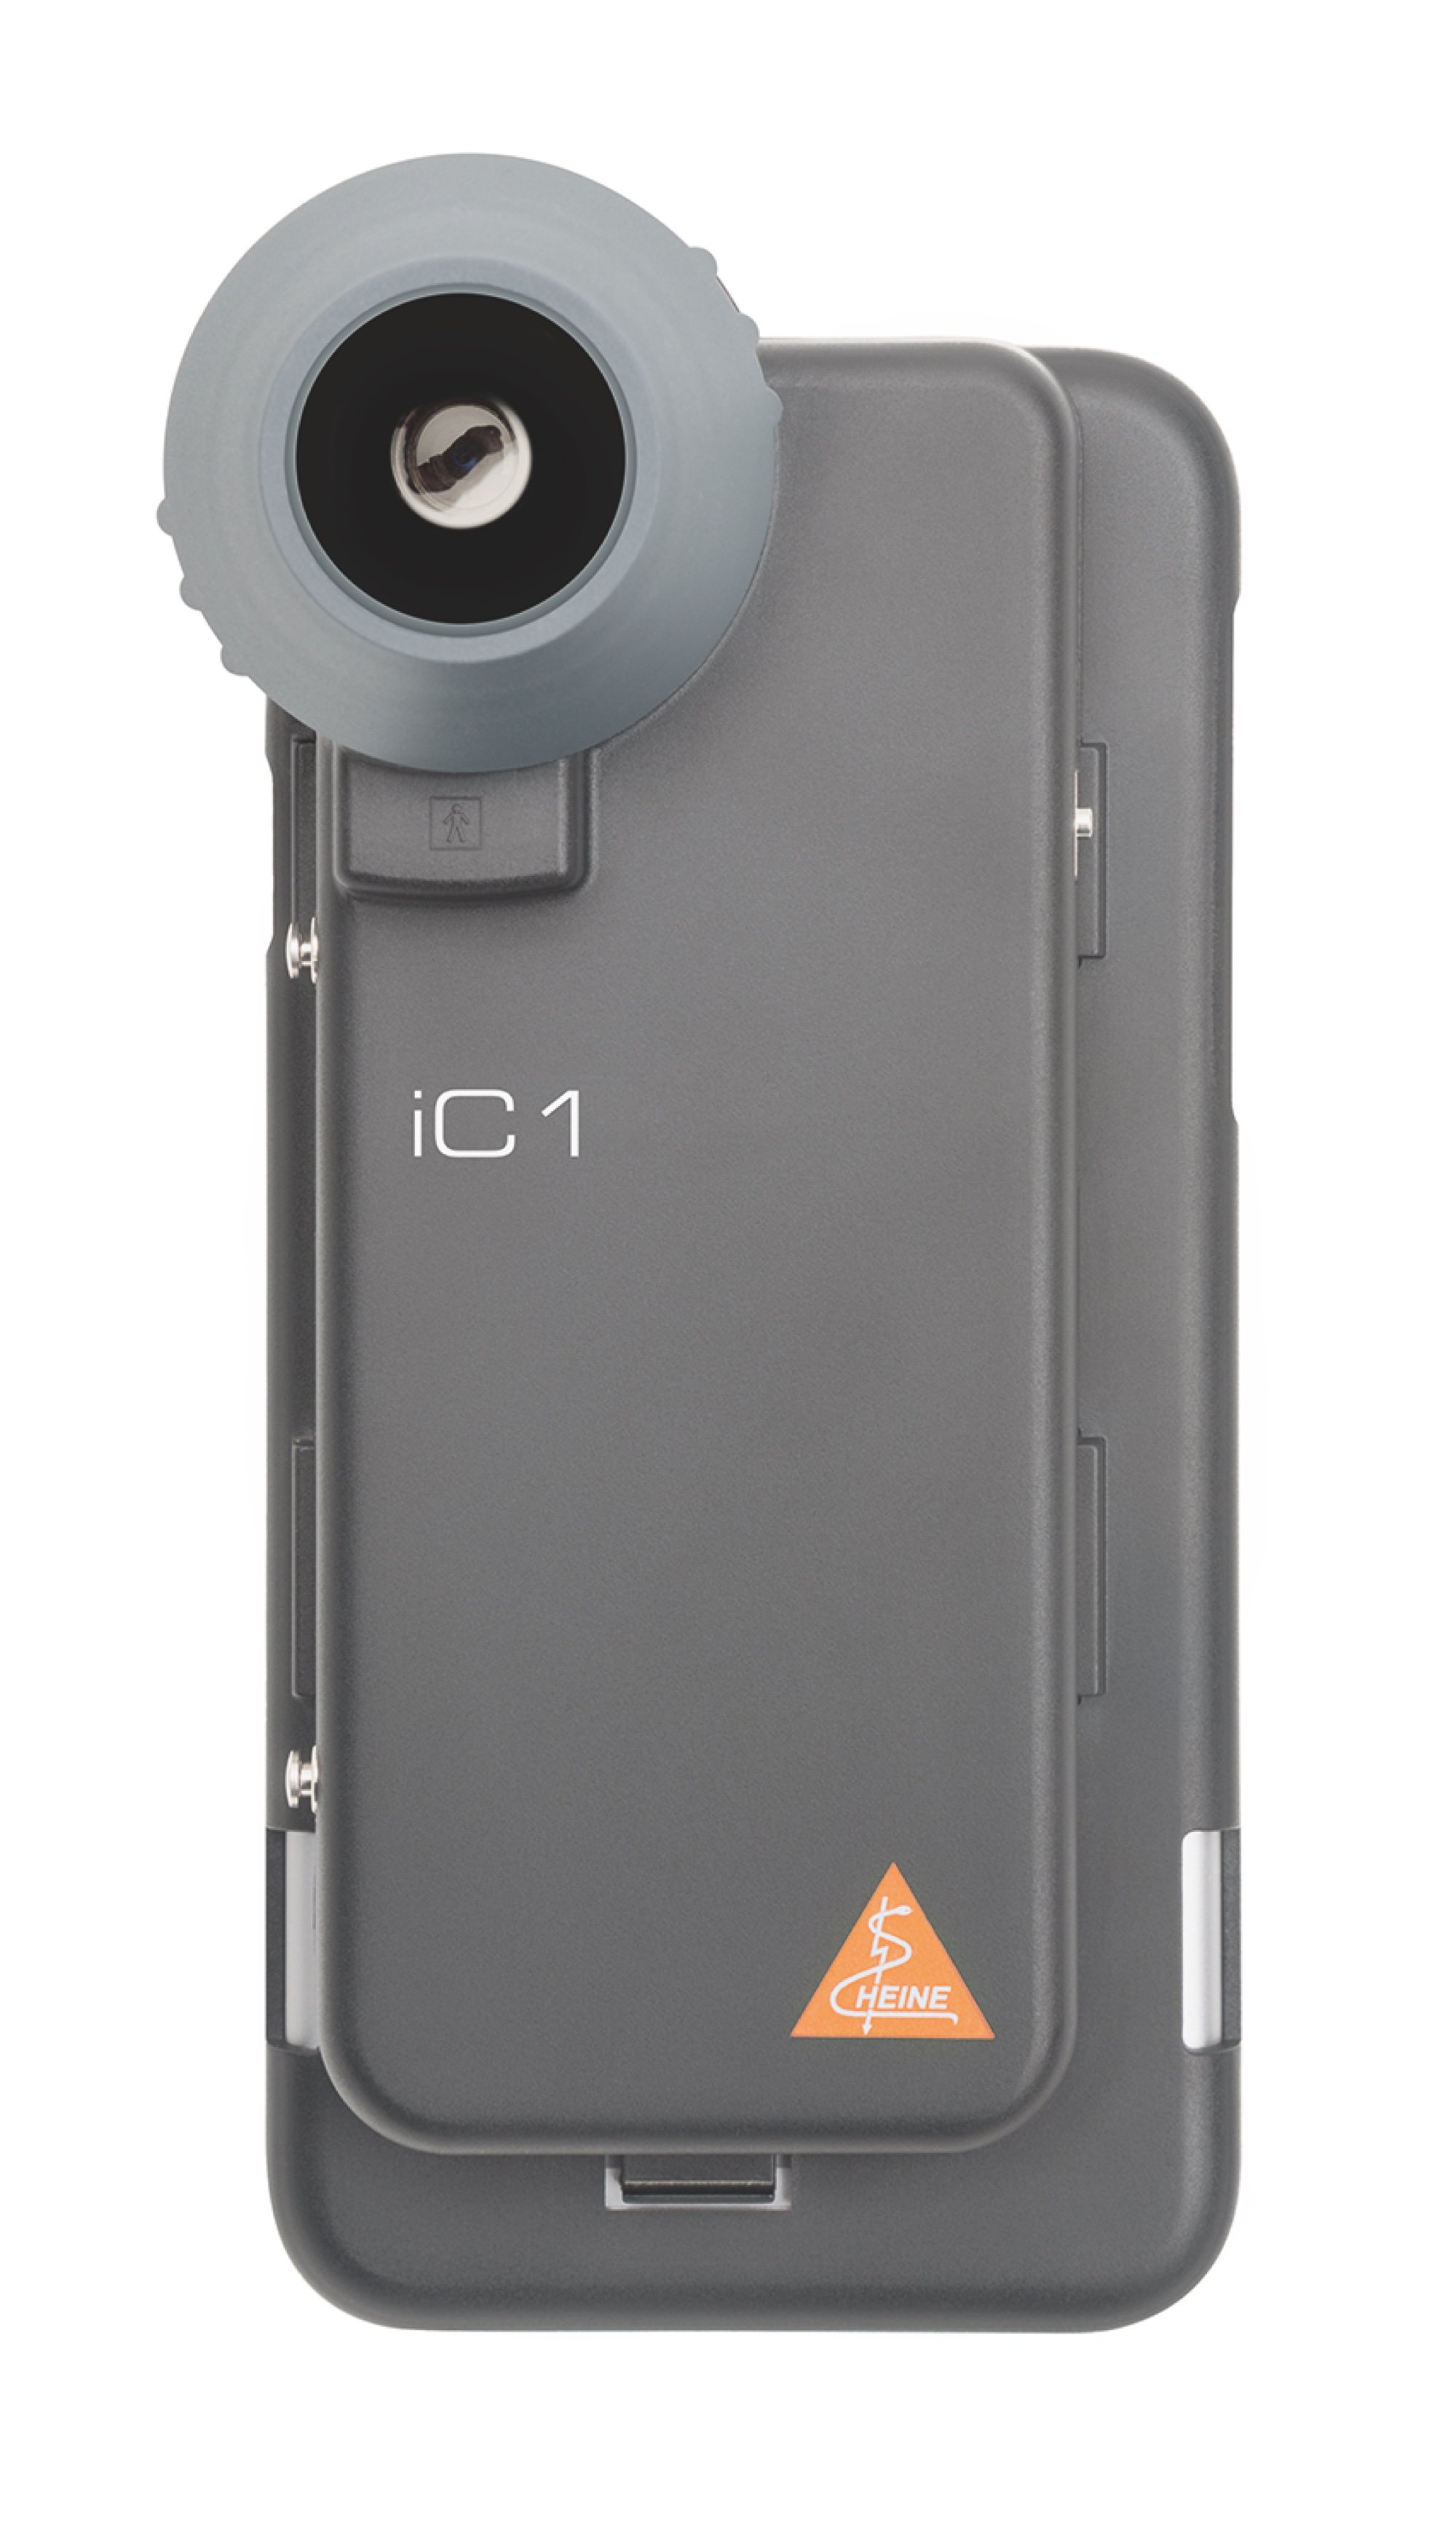 HEINE iC 1 Dermatoscope for iPhone 6/6s